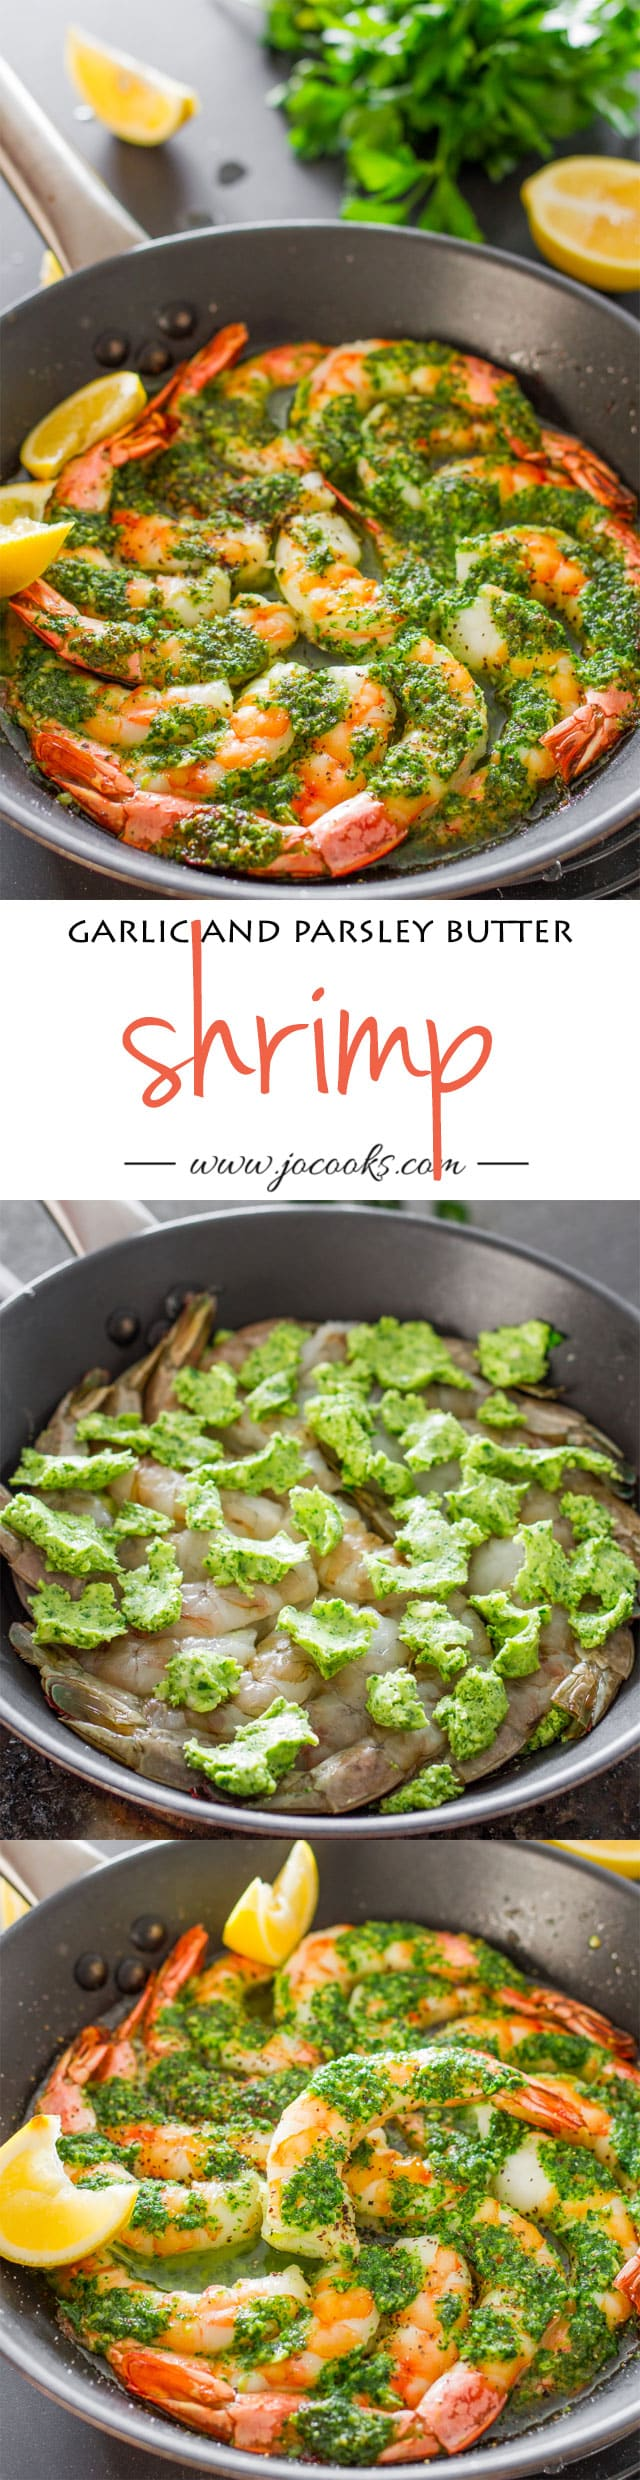 Garlic and Parsley Butter Shrimp - gorgeous jumbo shrimp slathered in an exquisite garlic and parsley butter and baked to perfection. jocooks.com #shrimp